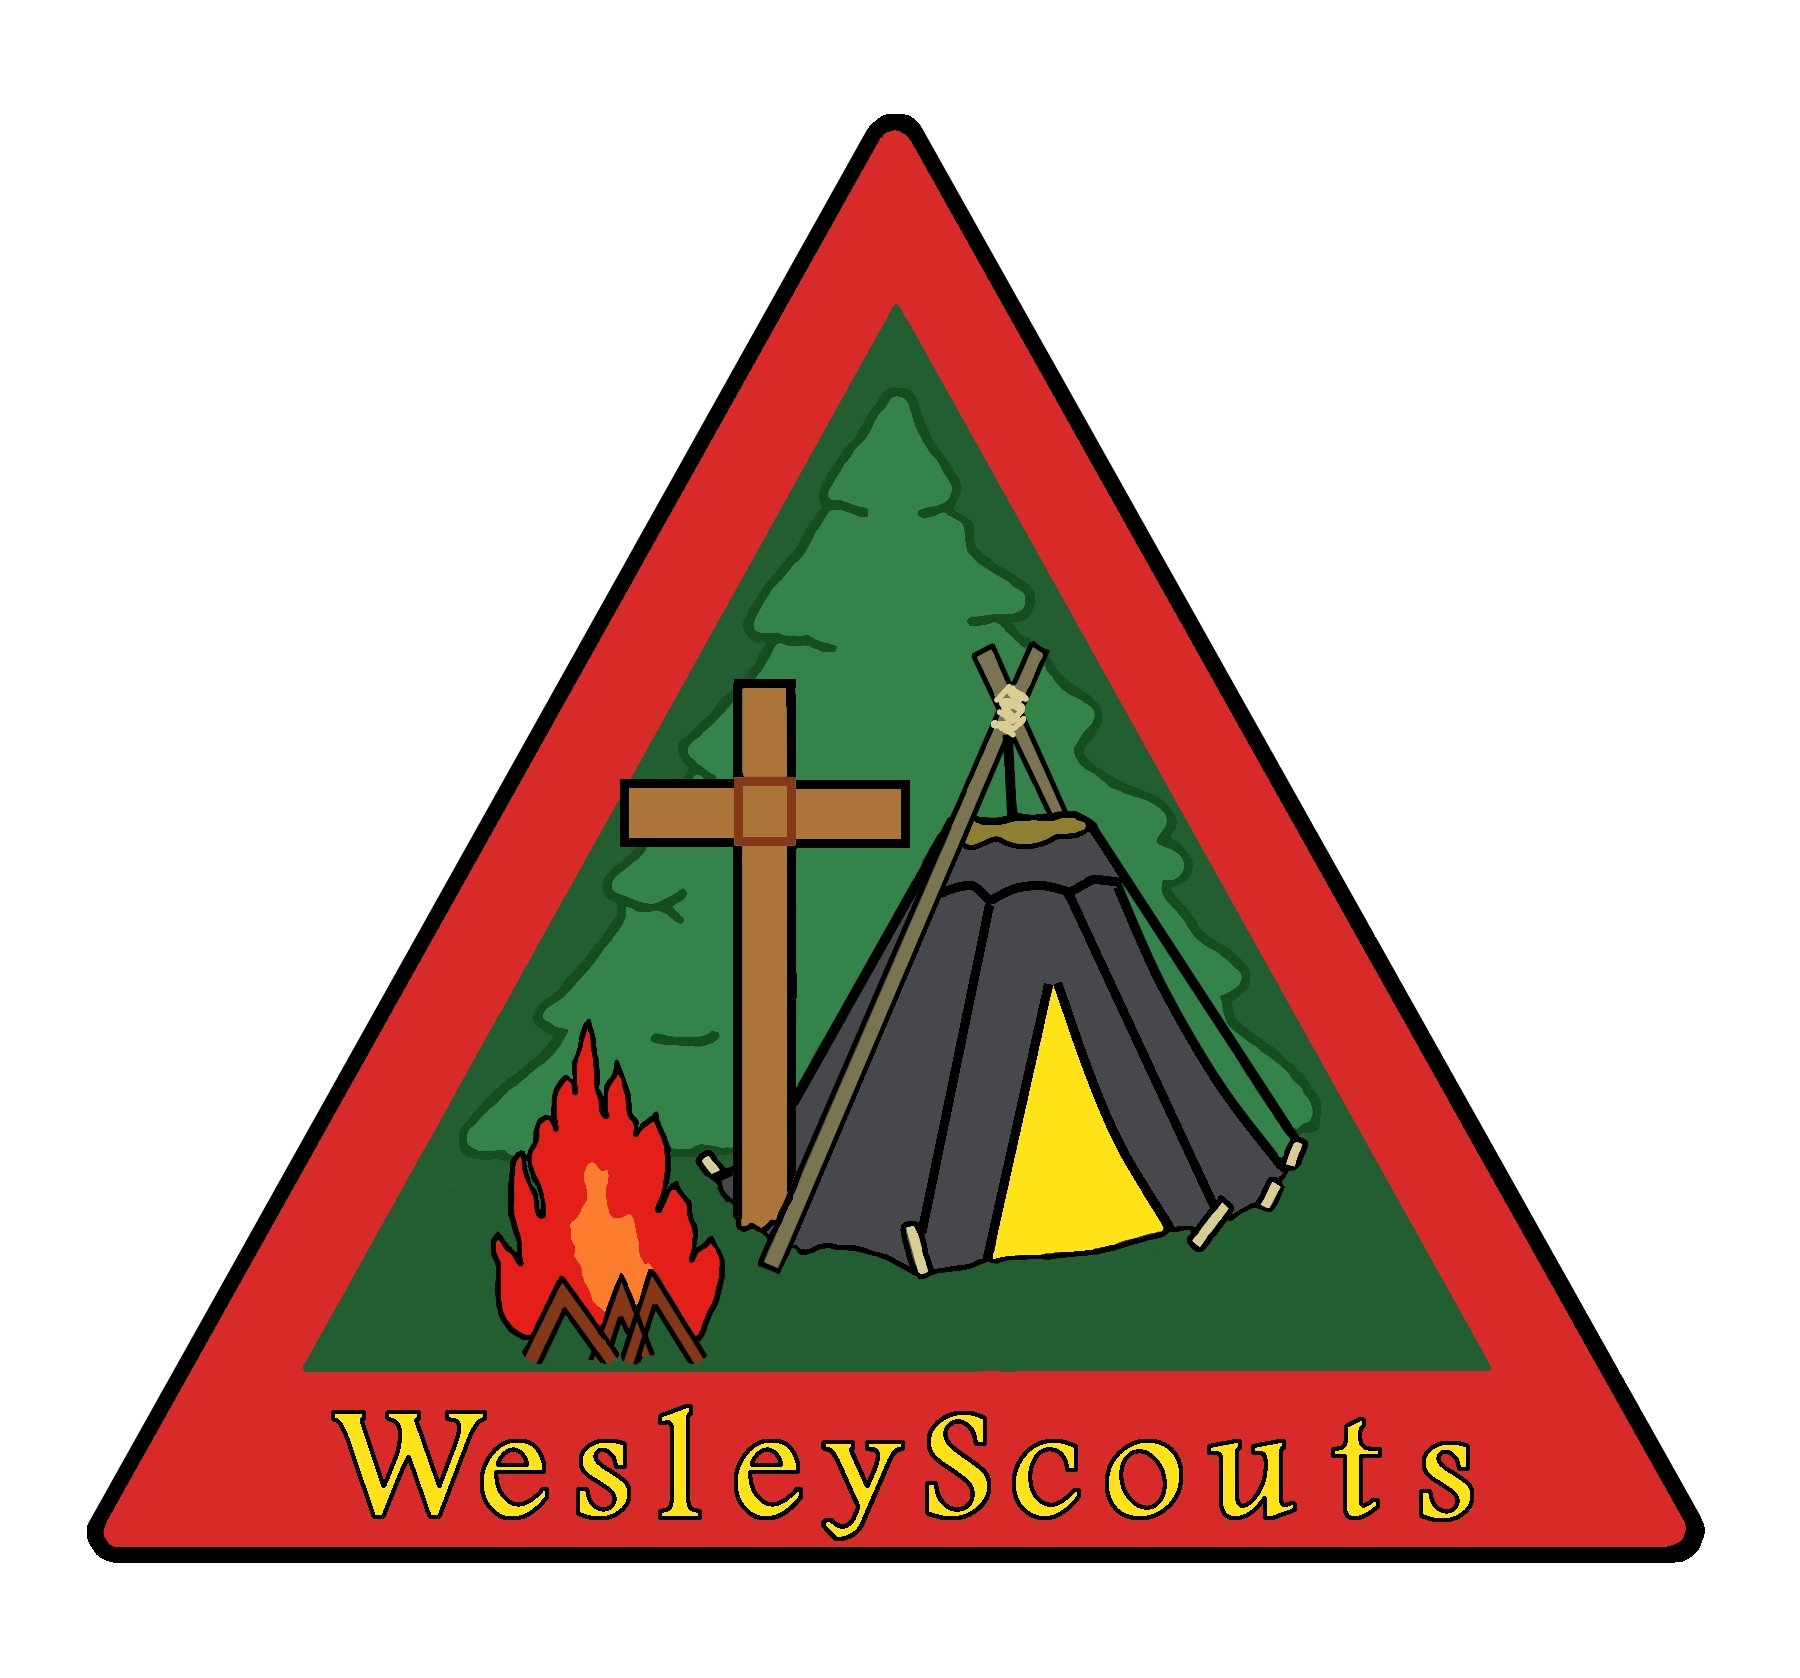 SC 4 11 GGG wesley scouts